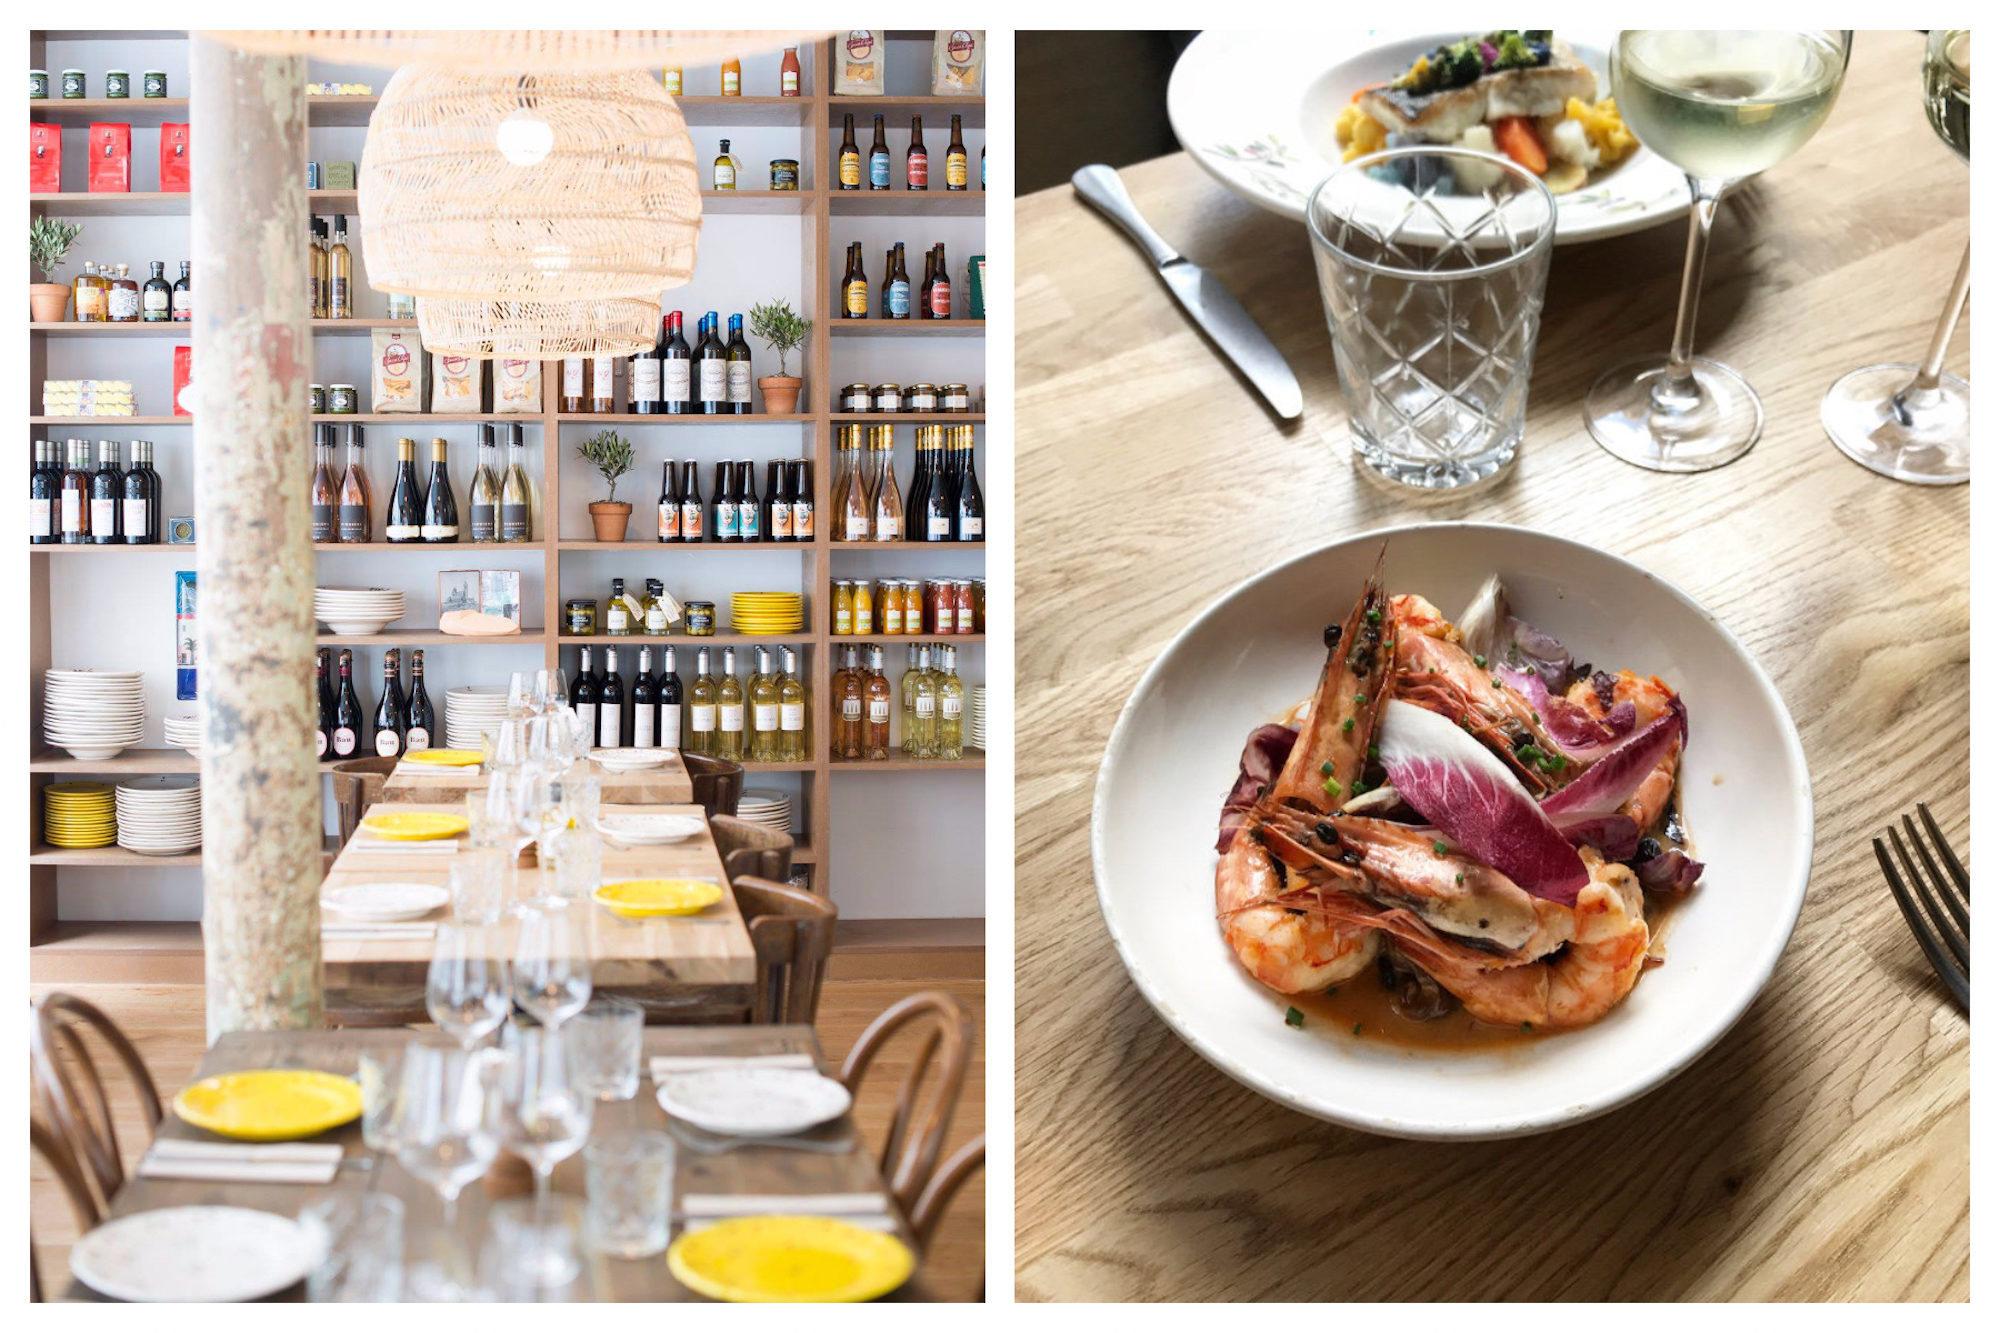 One of go-to places for having small plates in Paris, is A L'Ombre restaurant for the food, like tasty gambas salad (right) and the bright and light interiors, along with the wine collection,which lines the back wall (left).